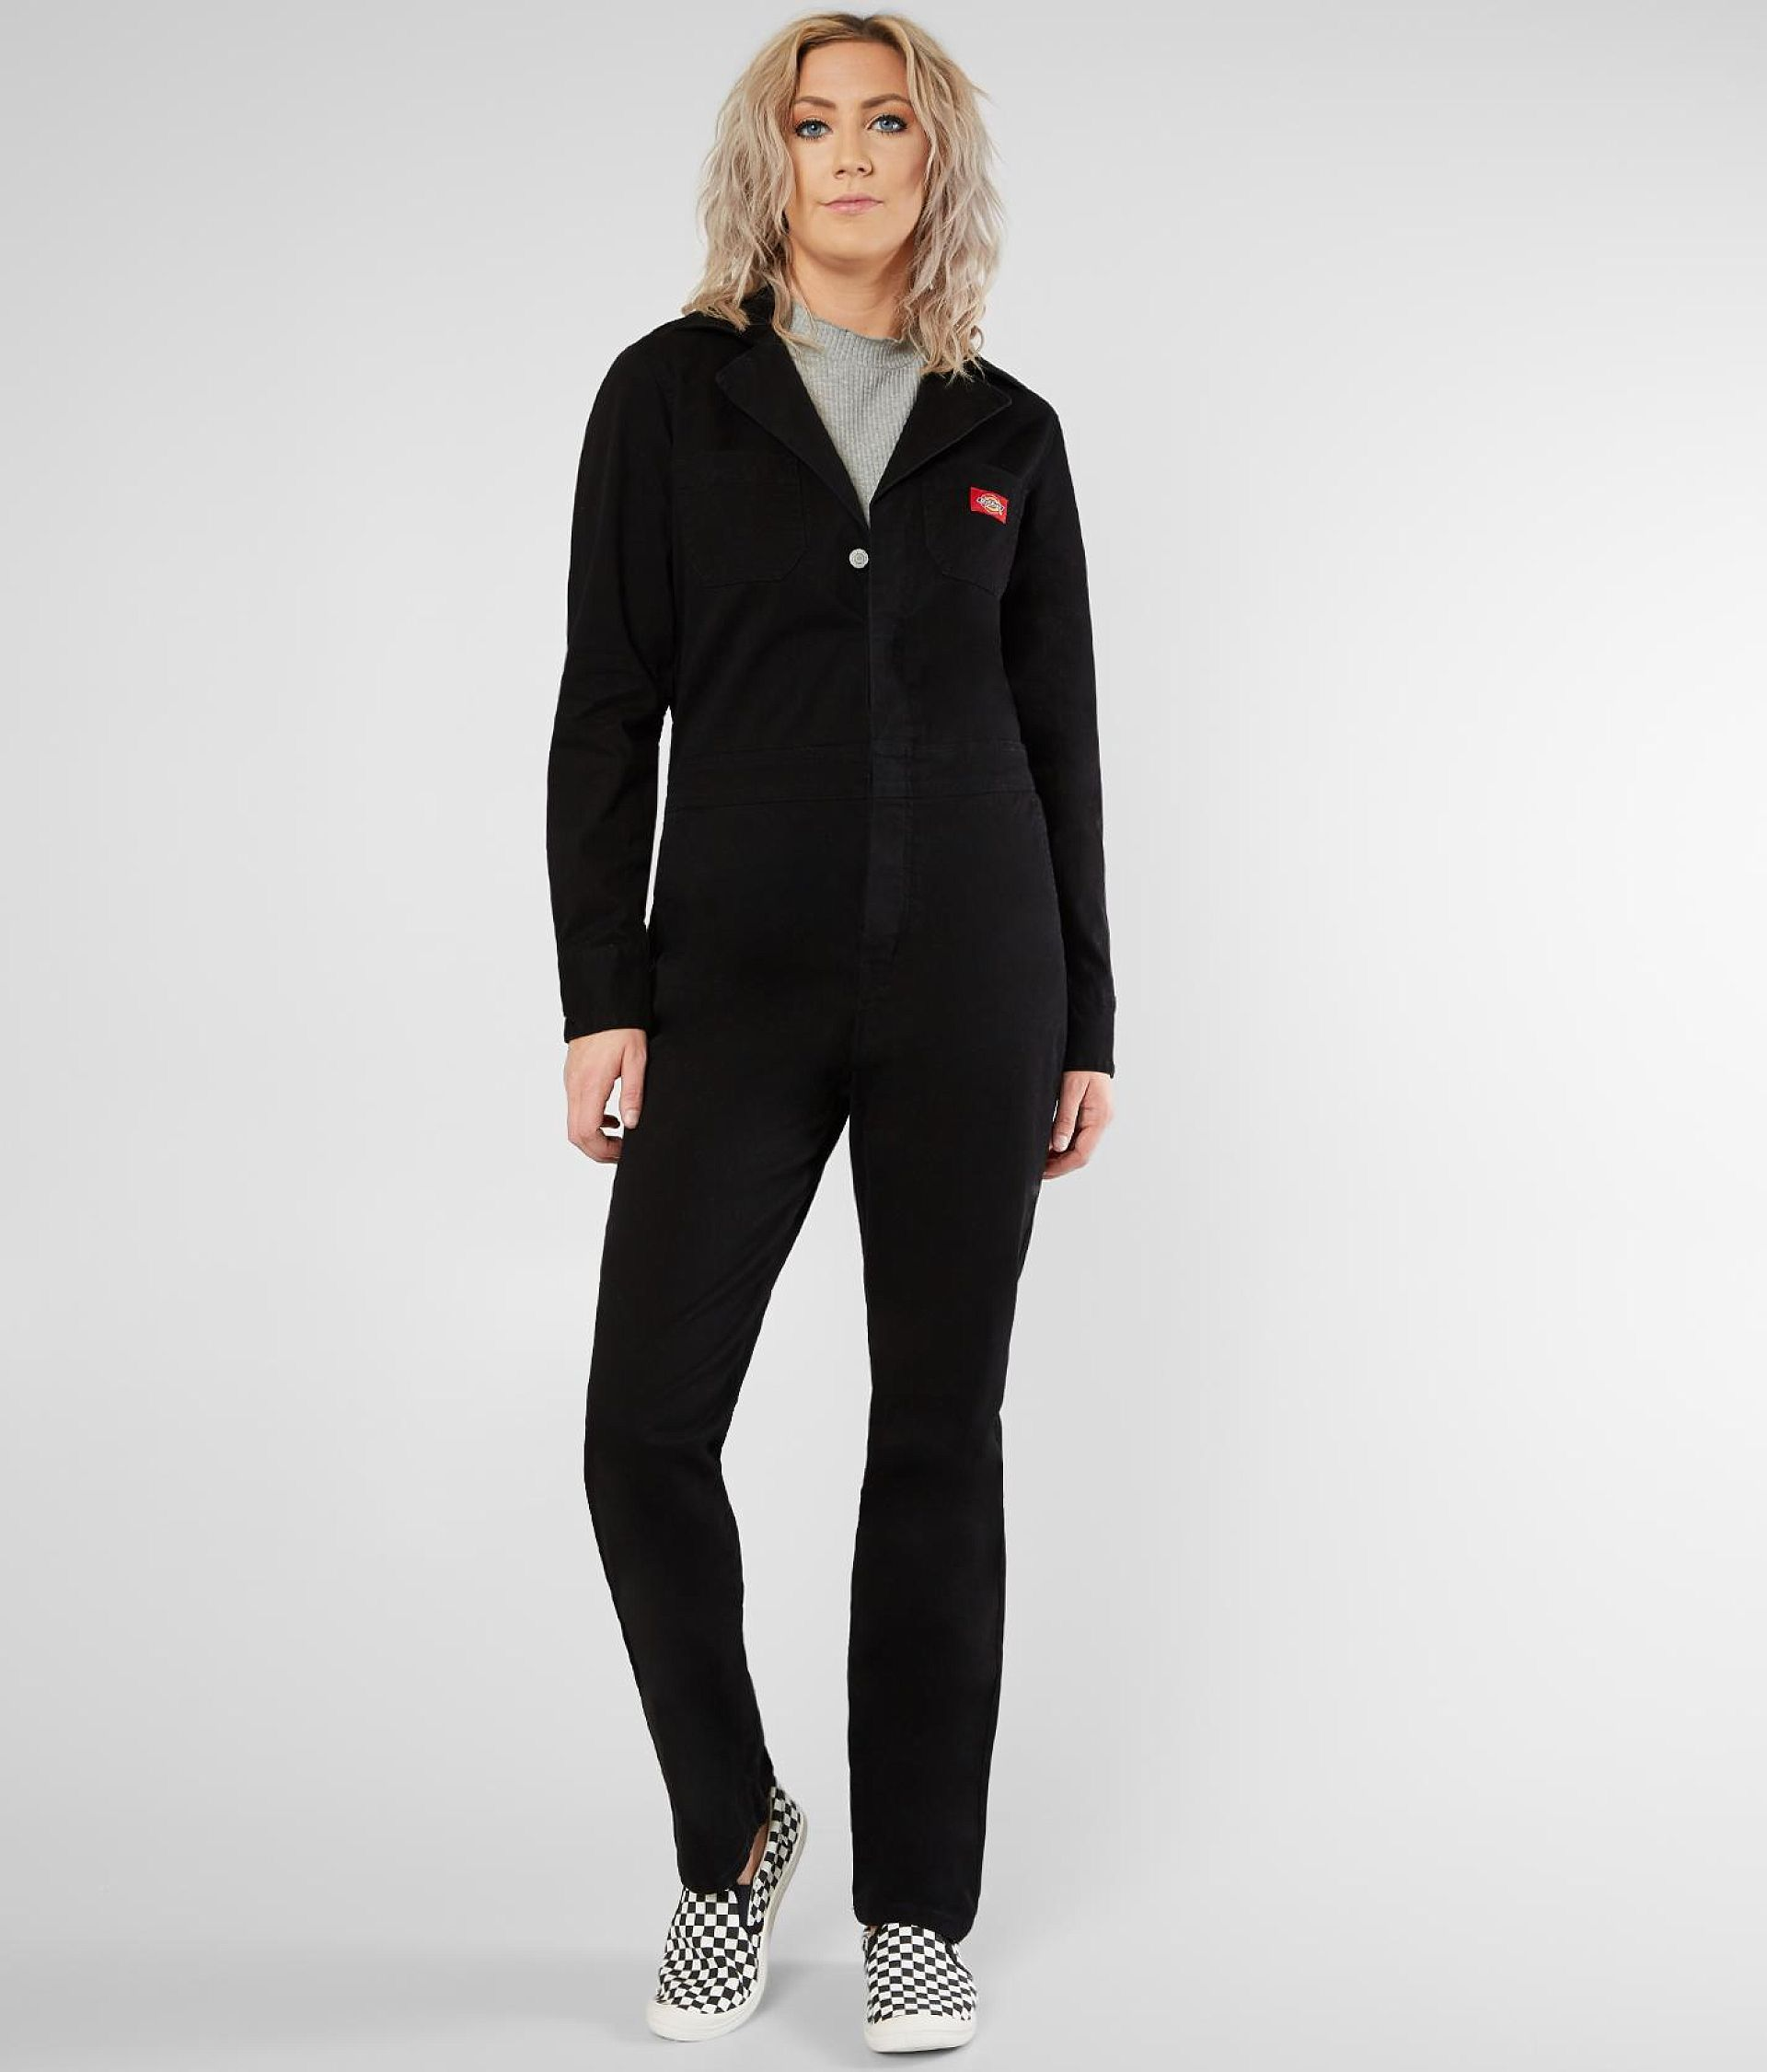 a84510aecc6 Dickies Full Length Coveralls - Women s Rompers Jumpsuits in Black ...